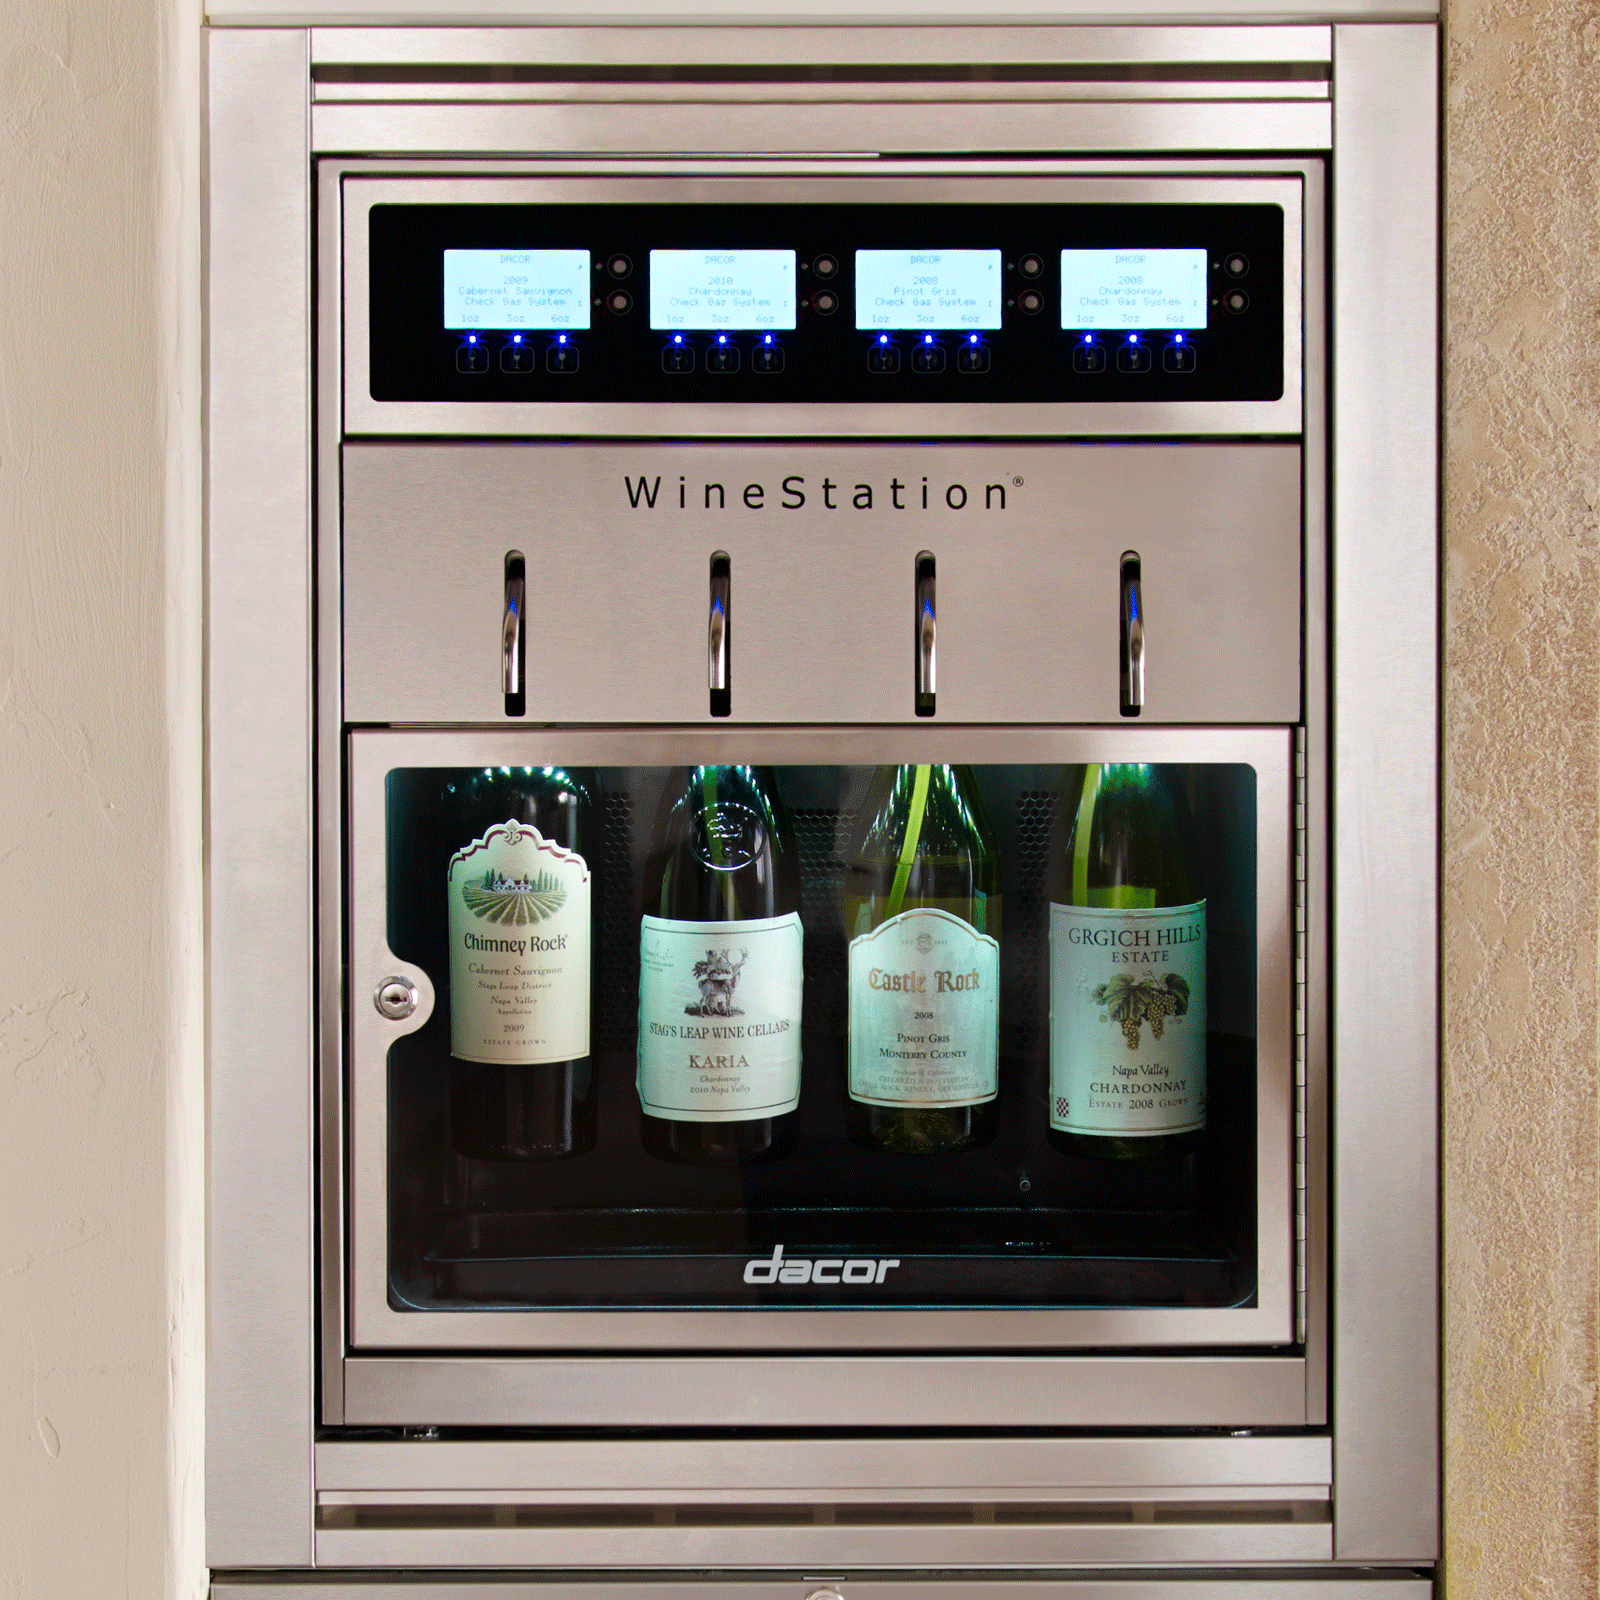 Dacor Heritage WineStation